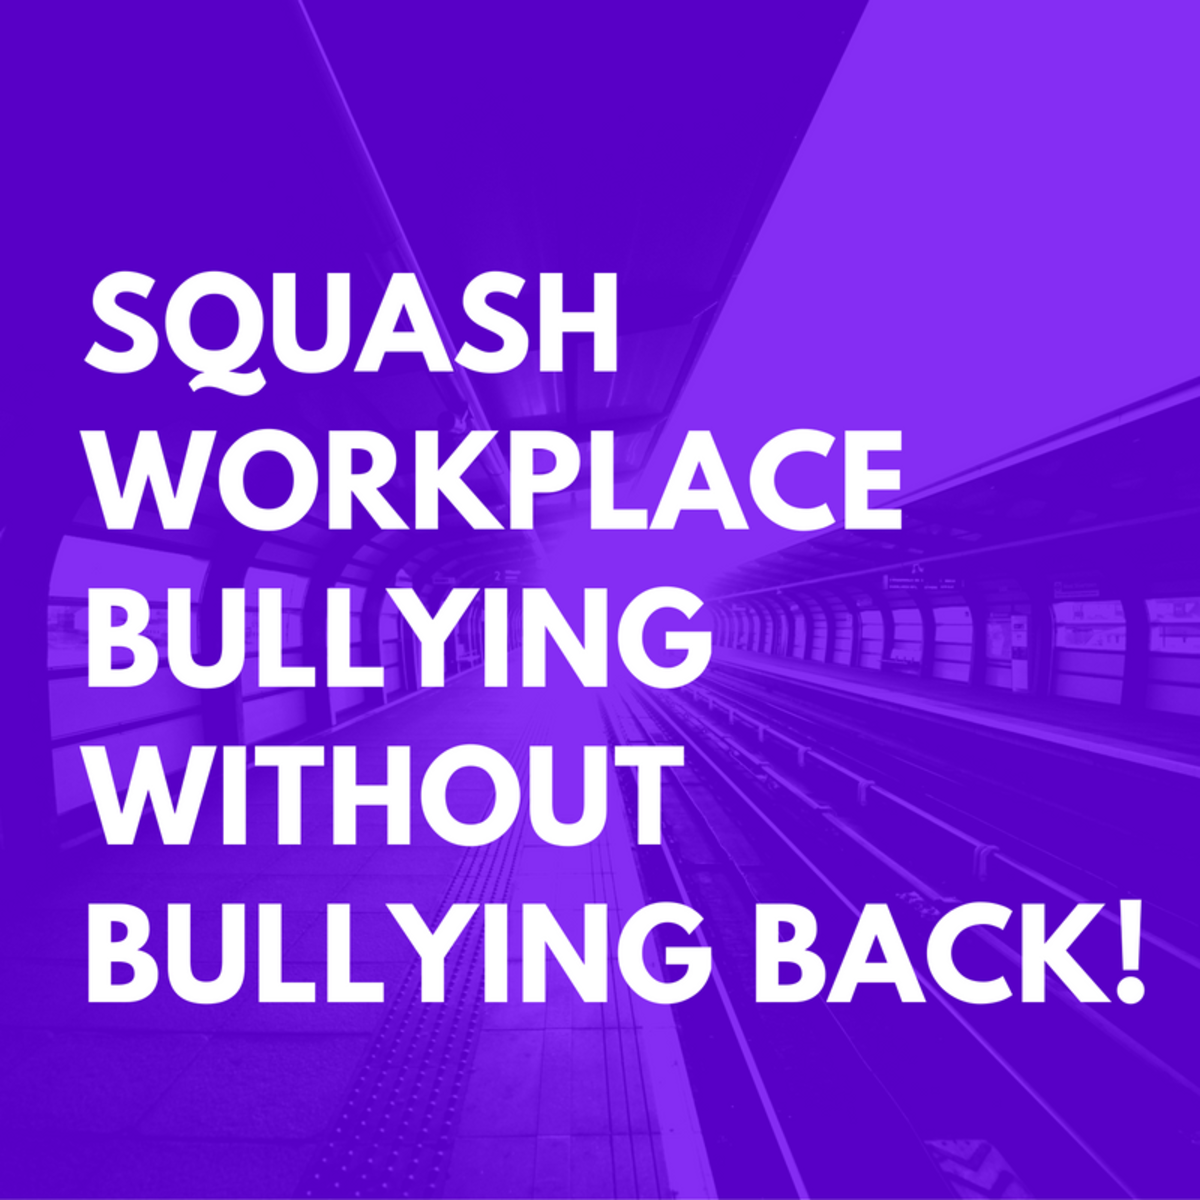 How To Squash Workplace Bullying Without Bullying Back!